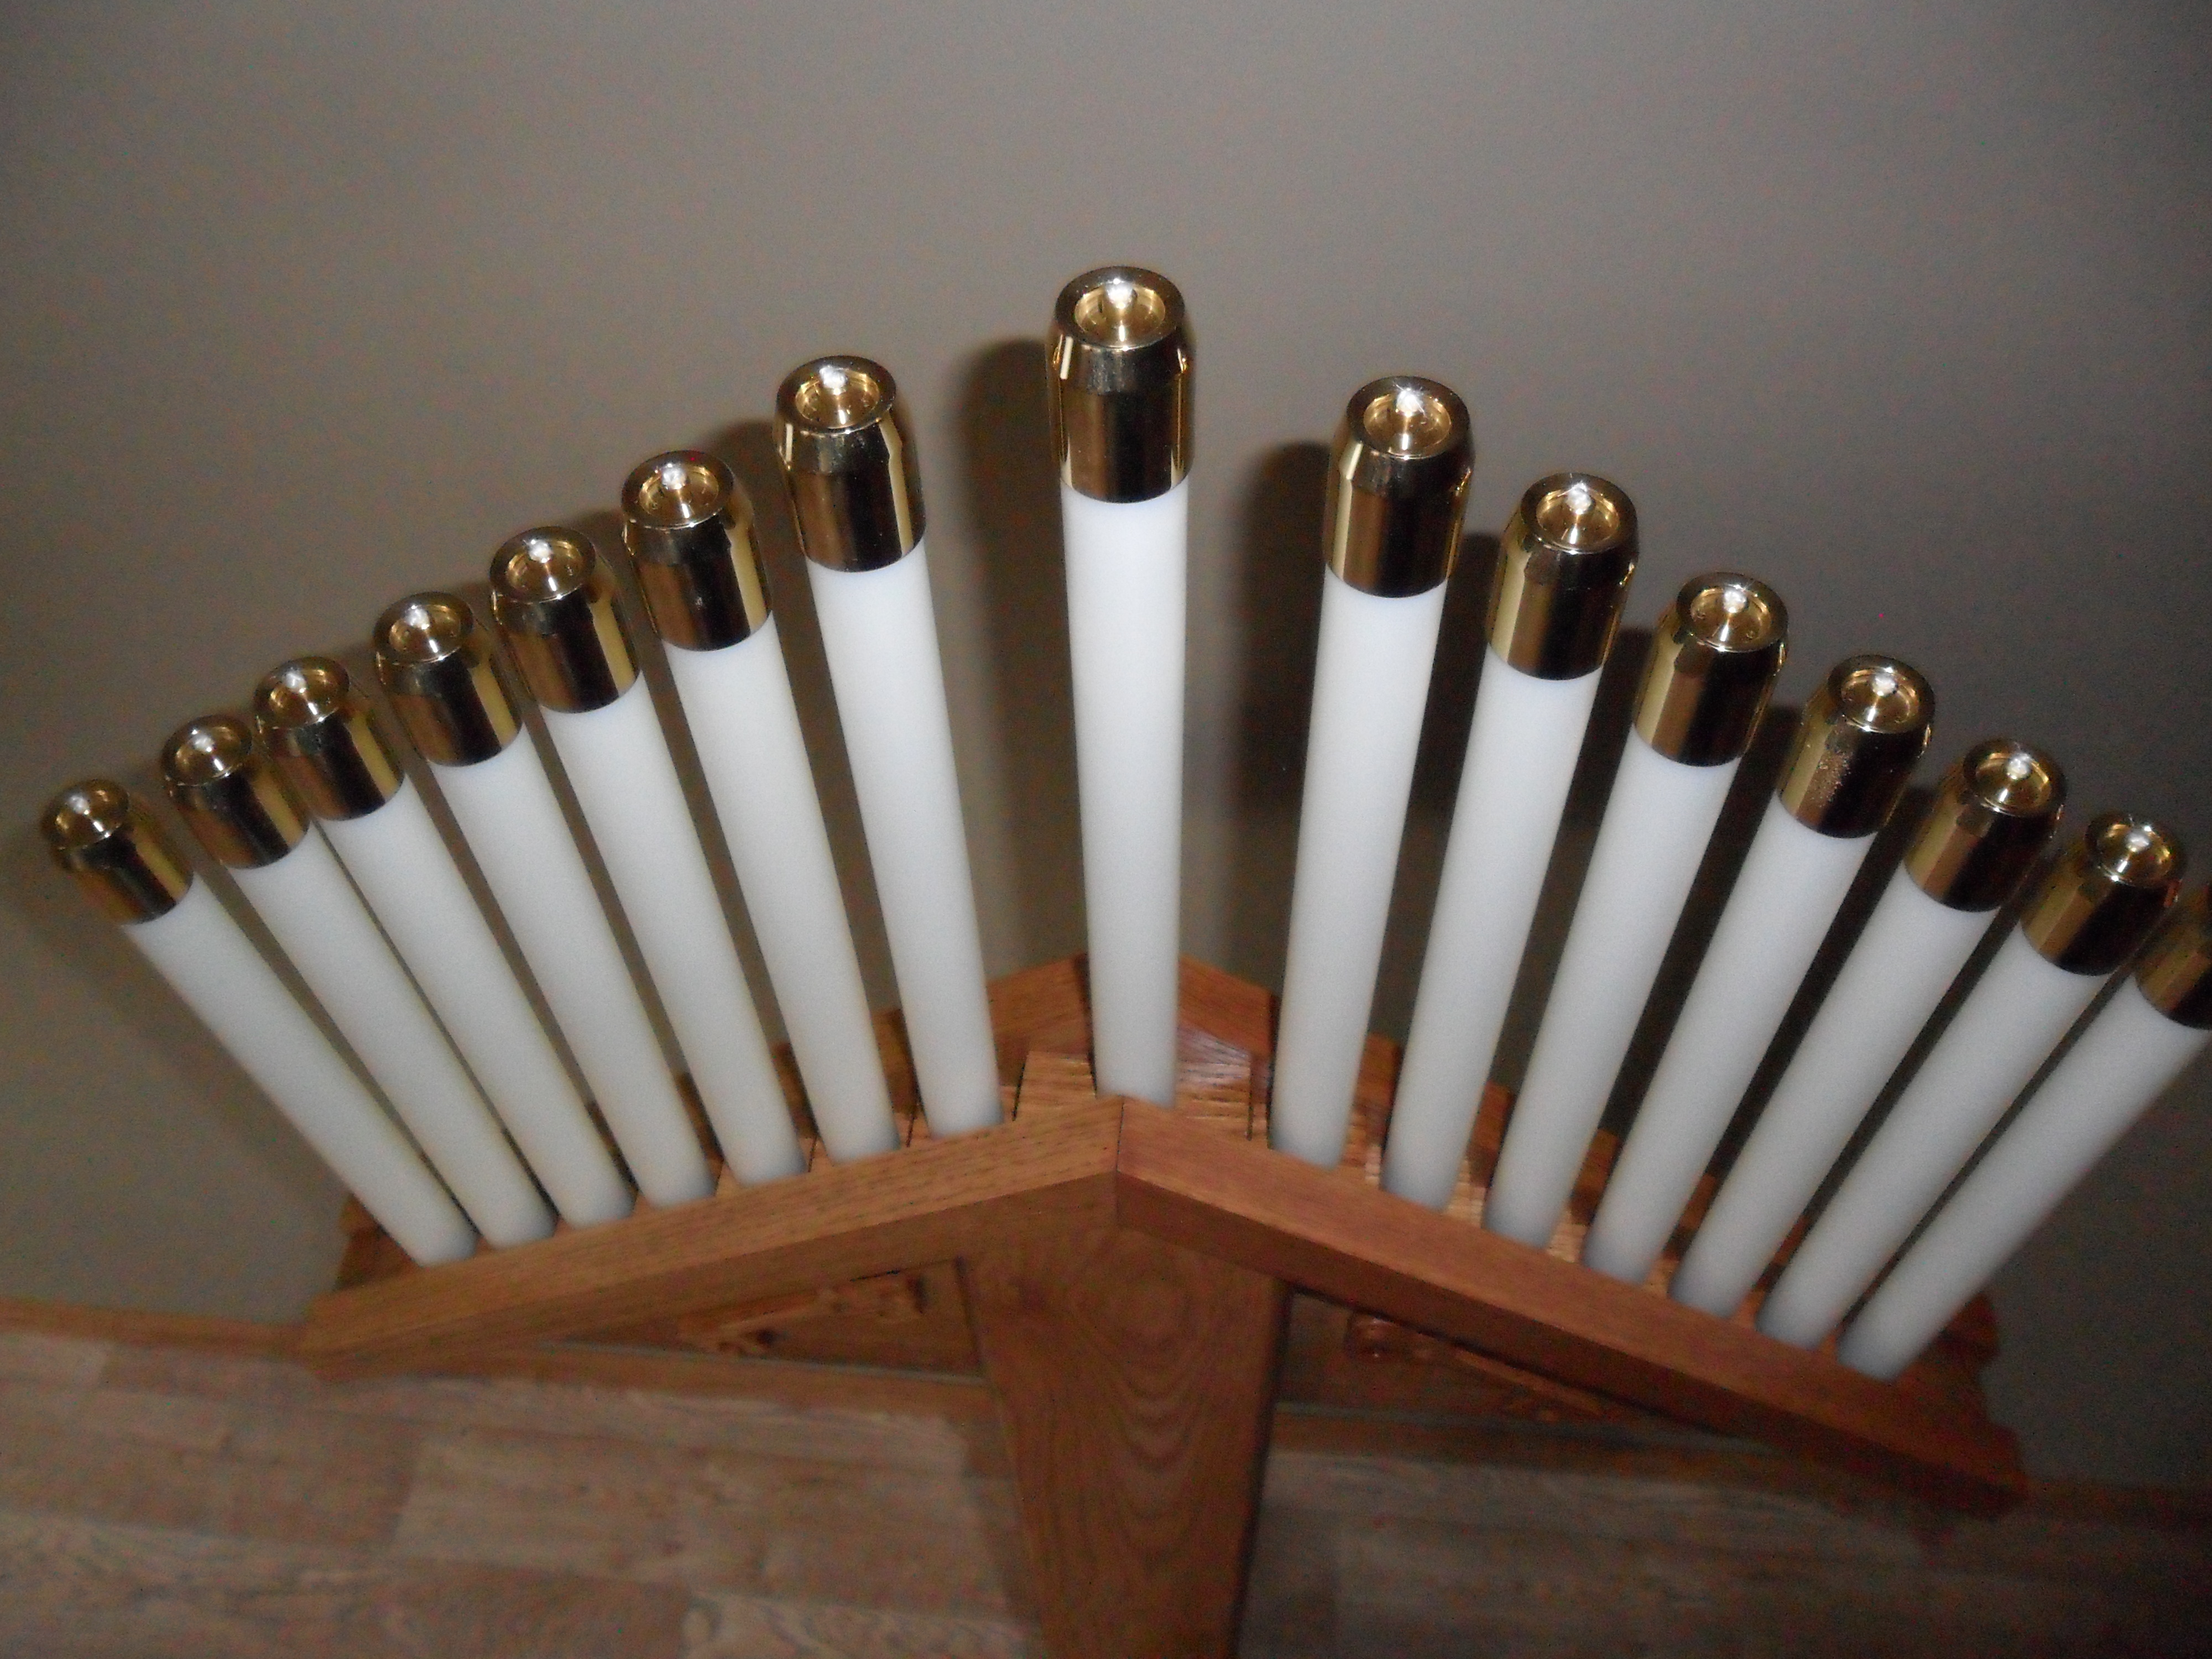 The tenebrae hearse midnight woodworking for Oil filled candlesticks